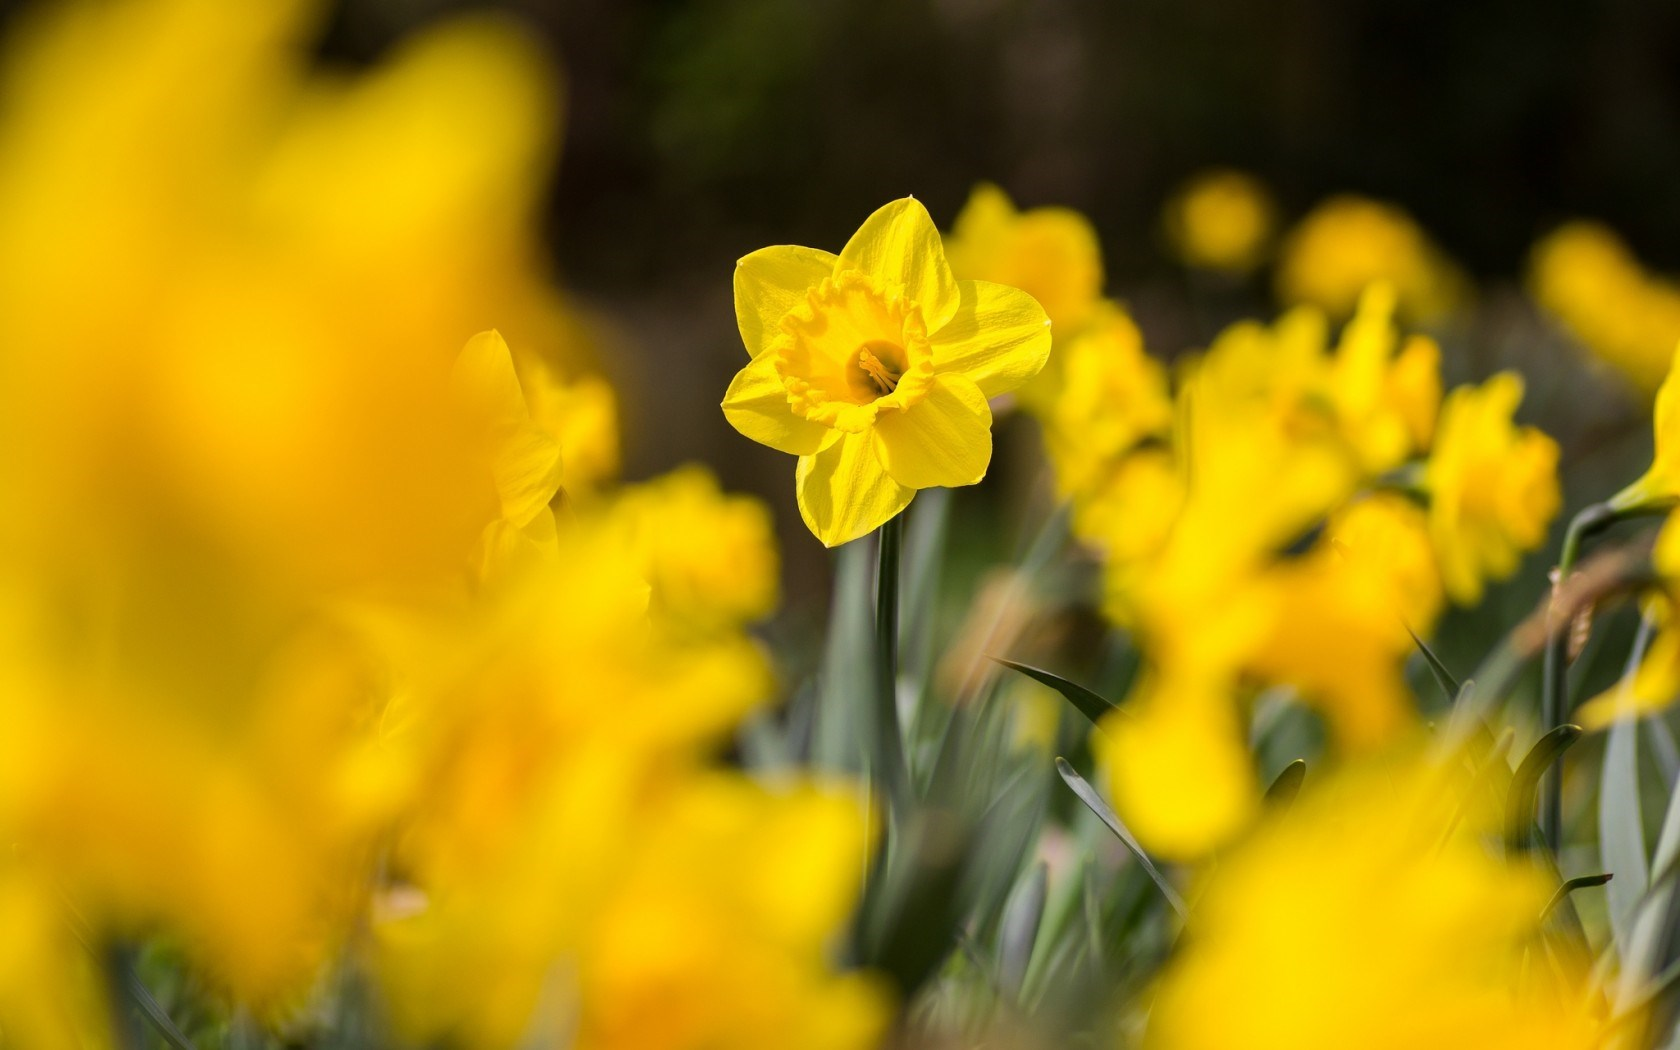 daffodils flowers yellow A3